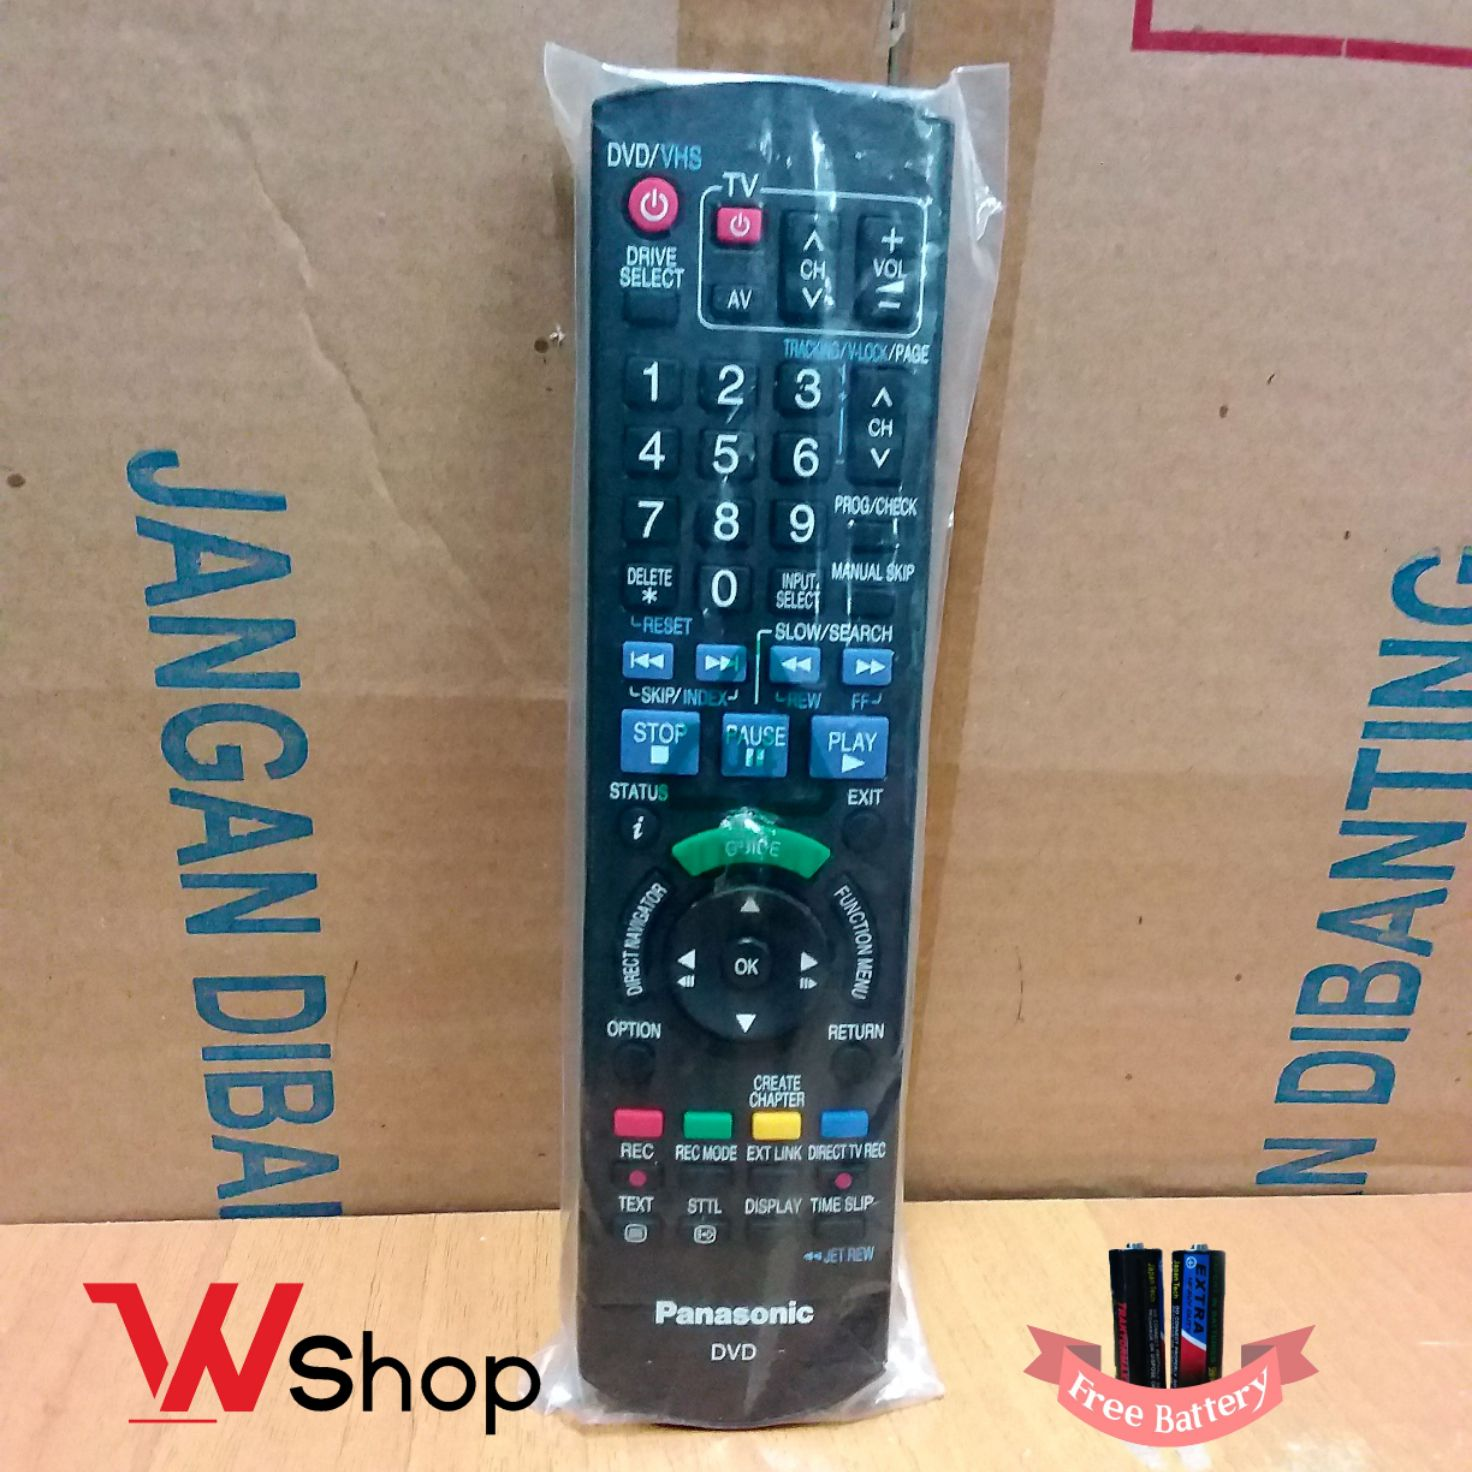 REMOTE/REMOT PANASONIC DMR DVD RECORDER/VCR/TV ORIGINAL